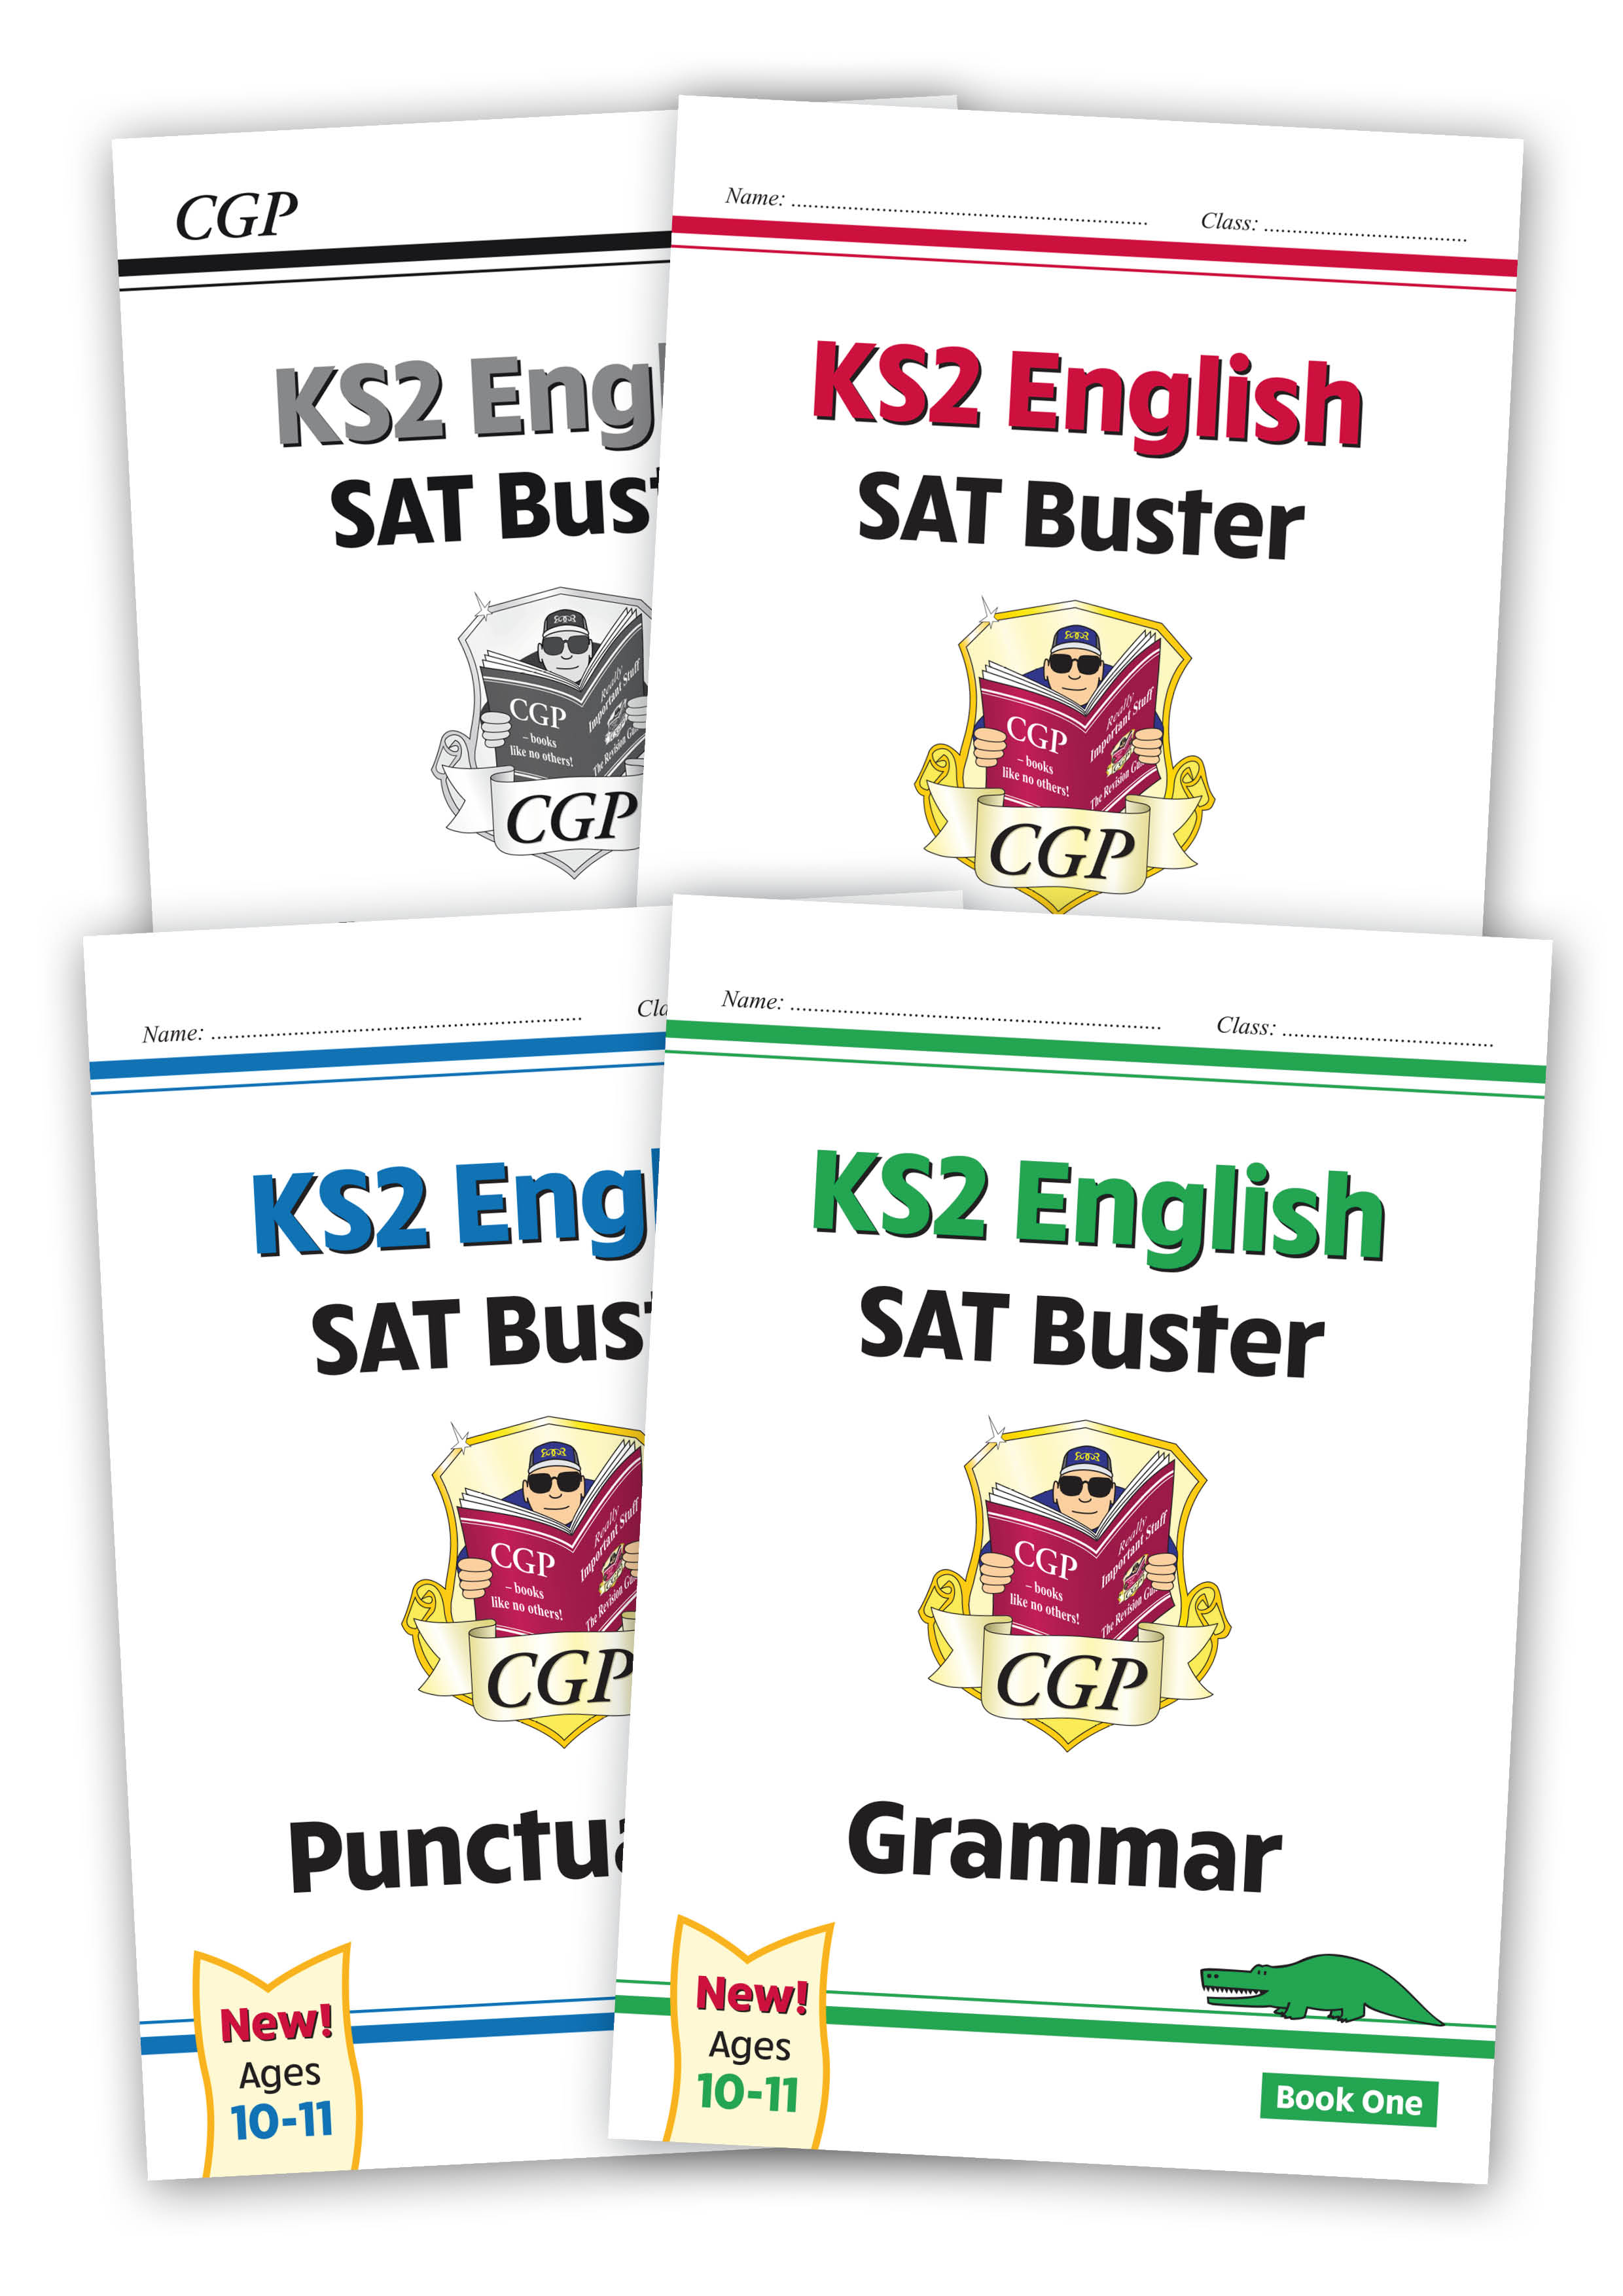 E6SBB24 - New KS2 English SPaG SAT Buster Book 1 Bundle - includes answers